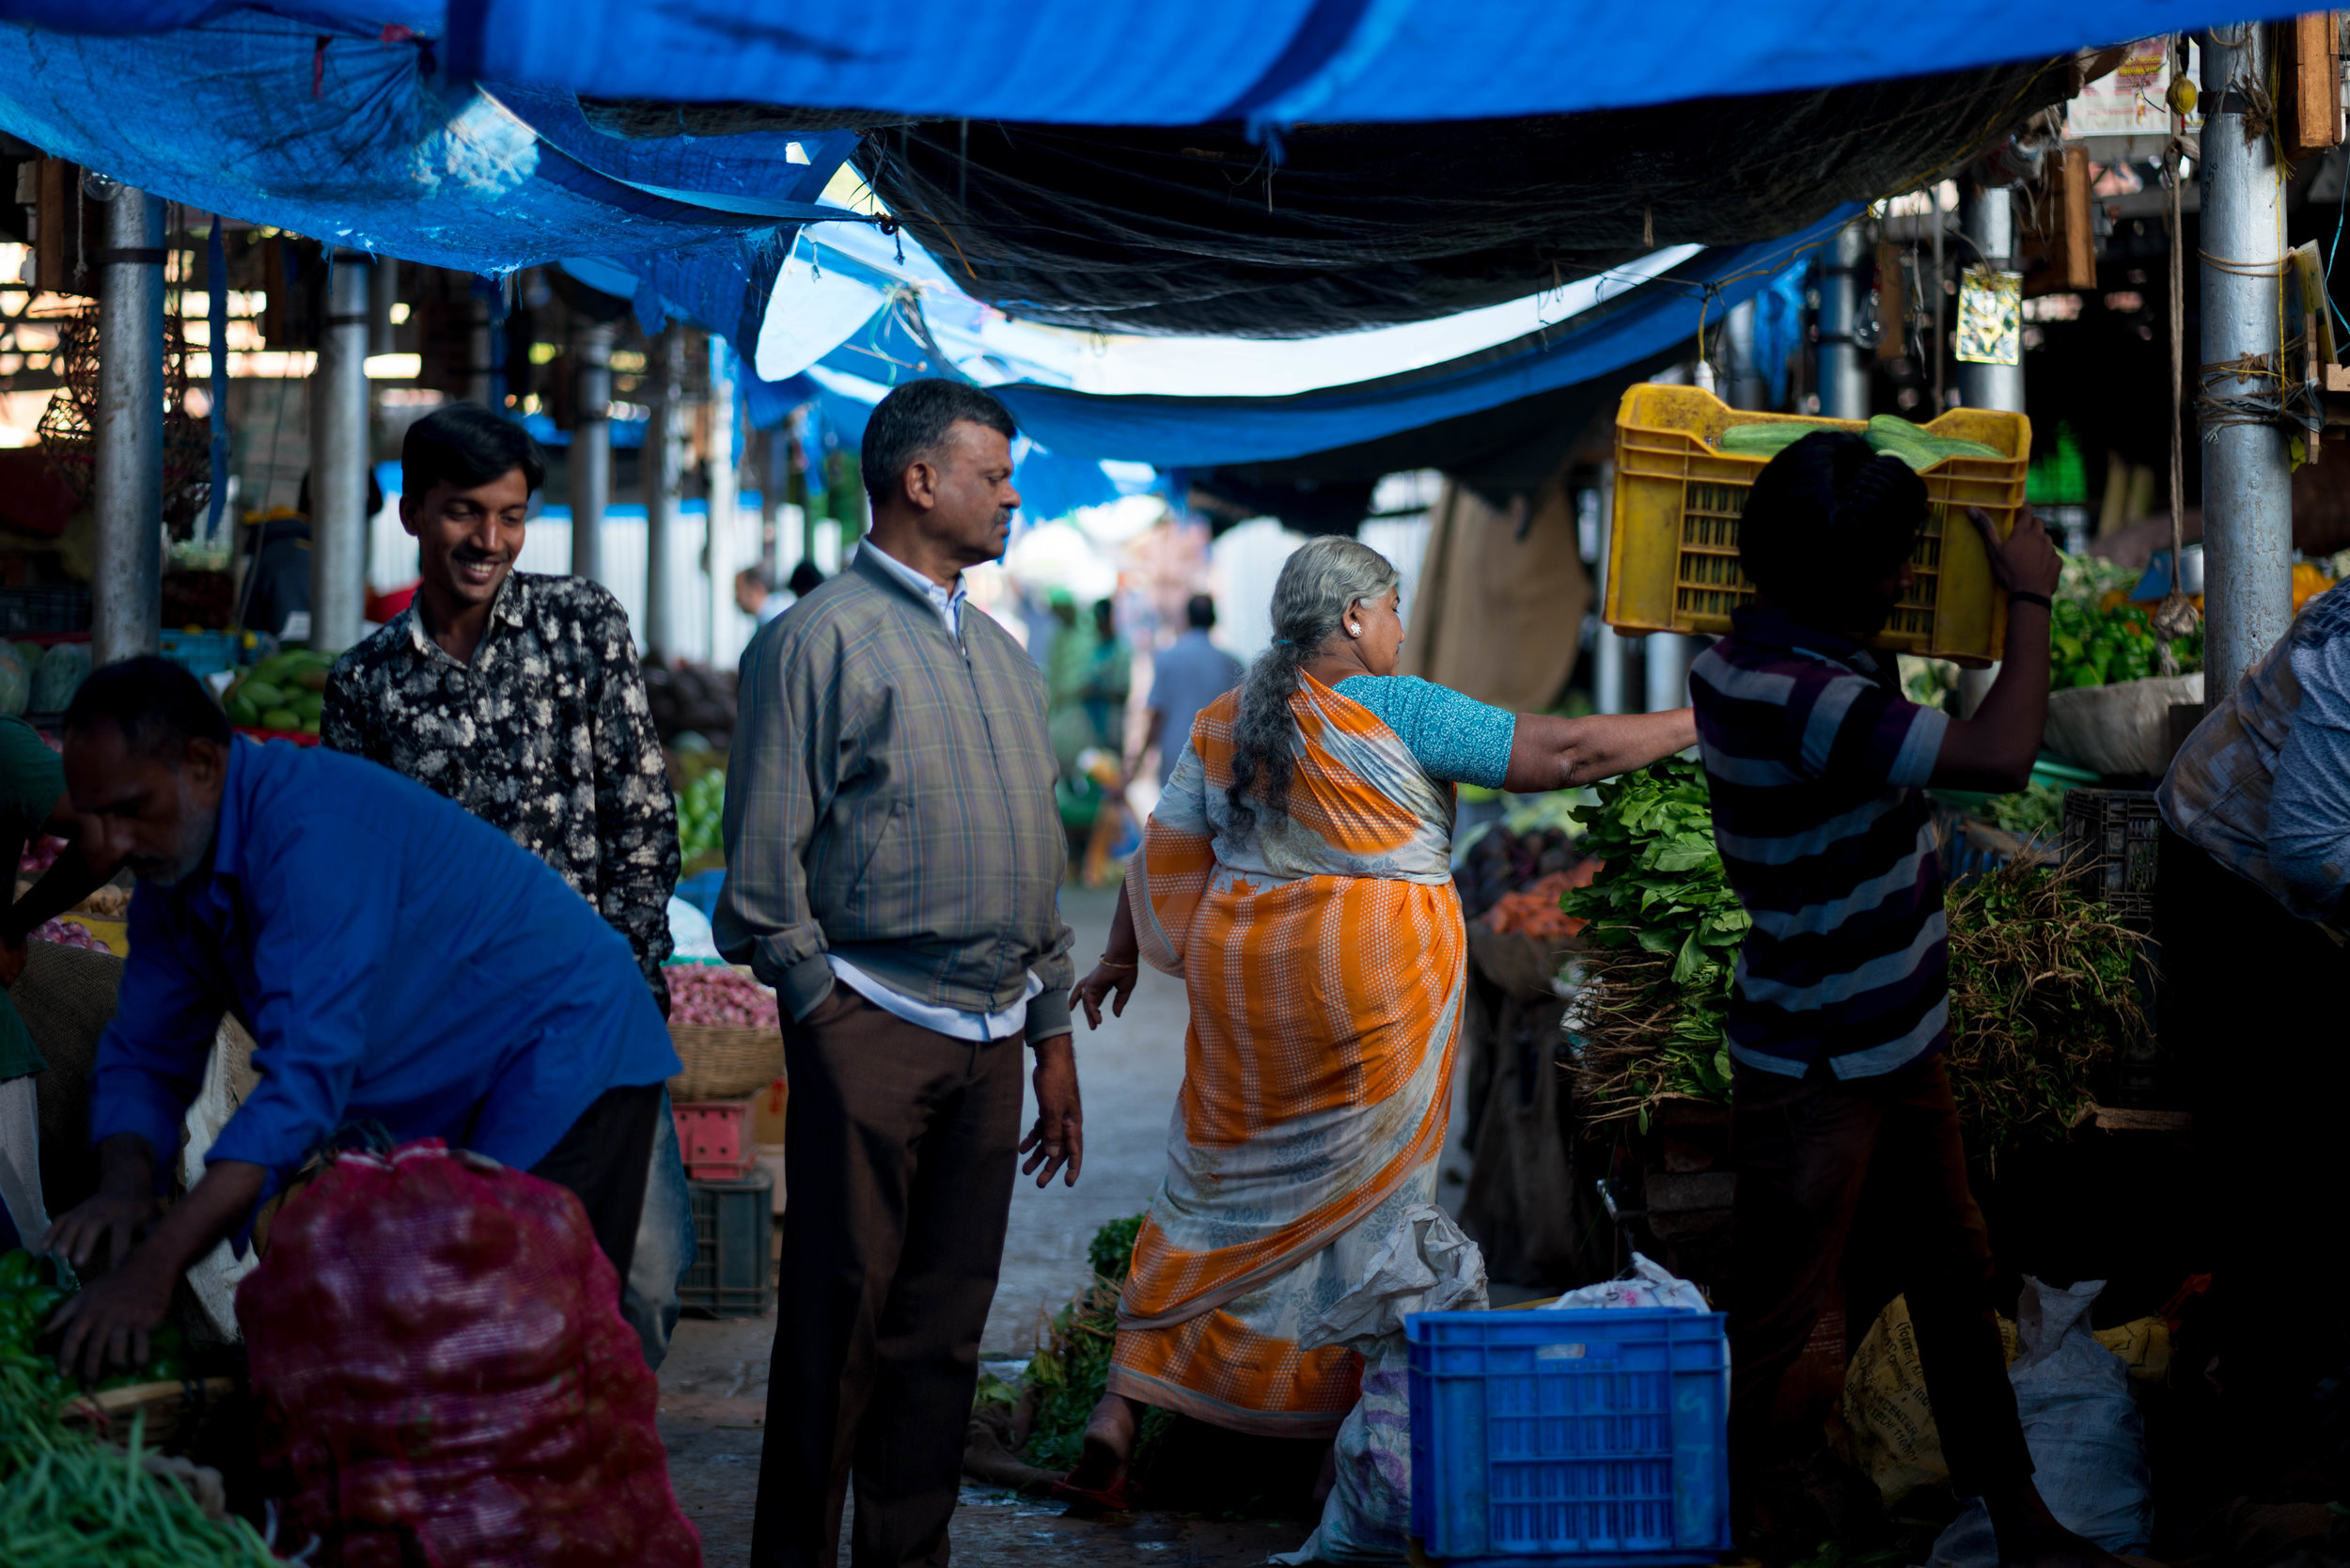 Morning Market, Mysore, India